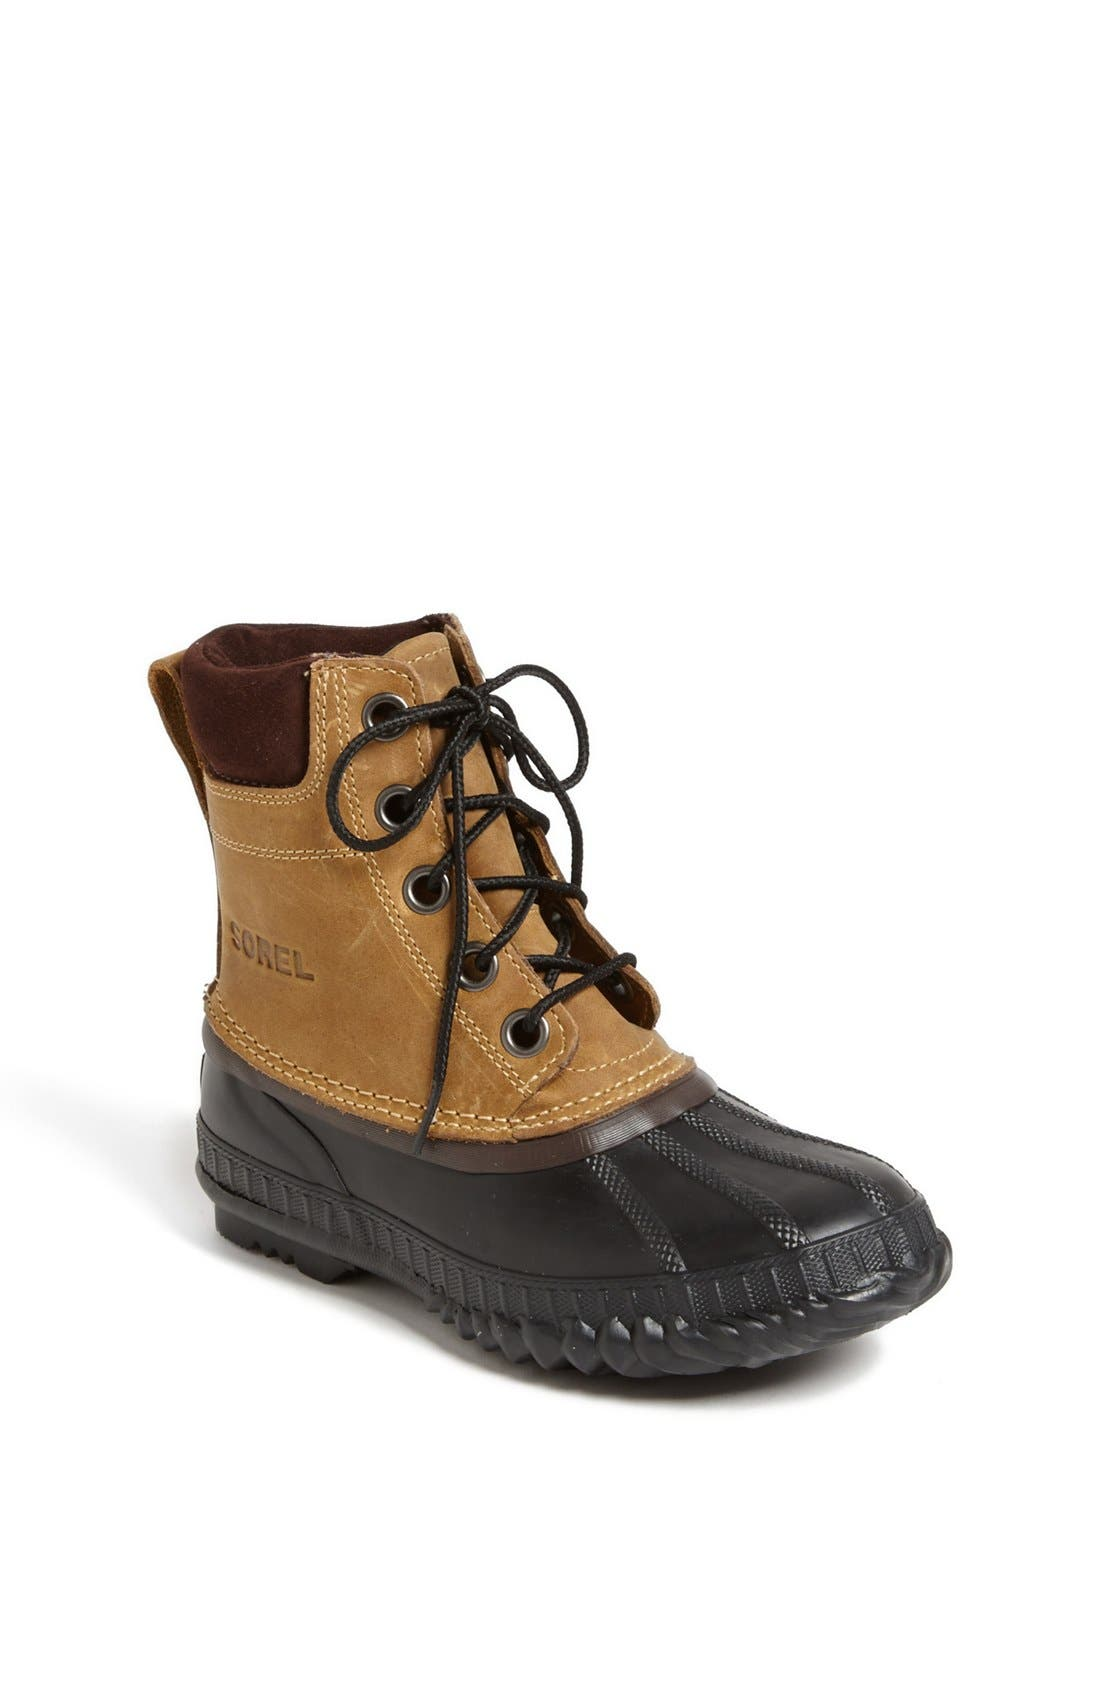 Alternate Image 1 Selected - SOREL 'Cheyenne' Boot (Little Kid & Big Kid)